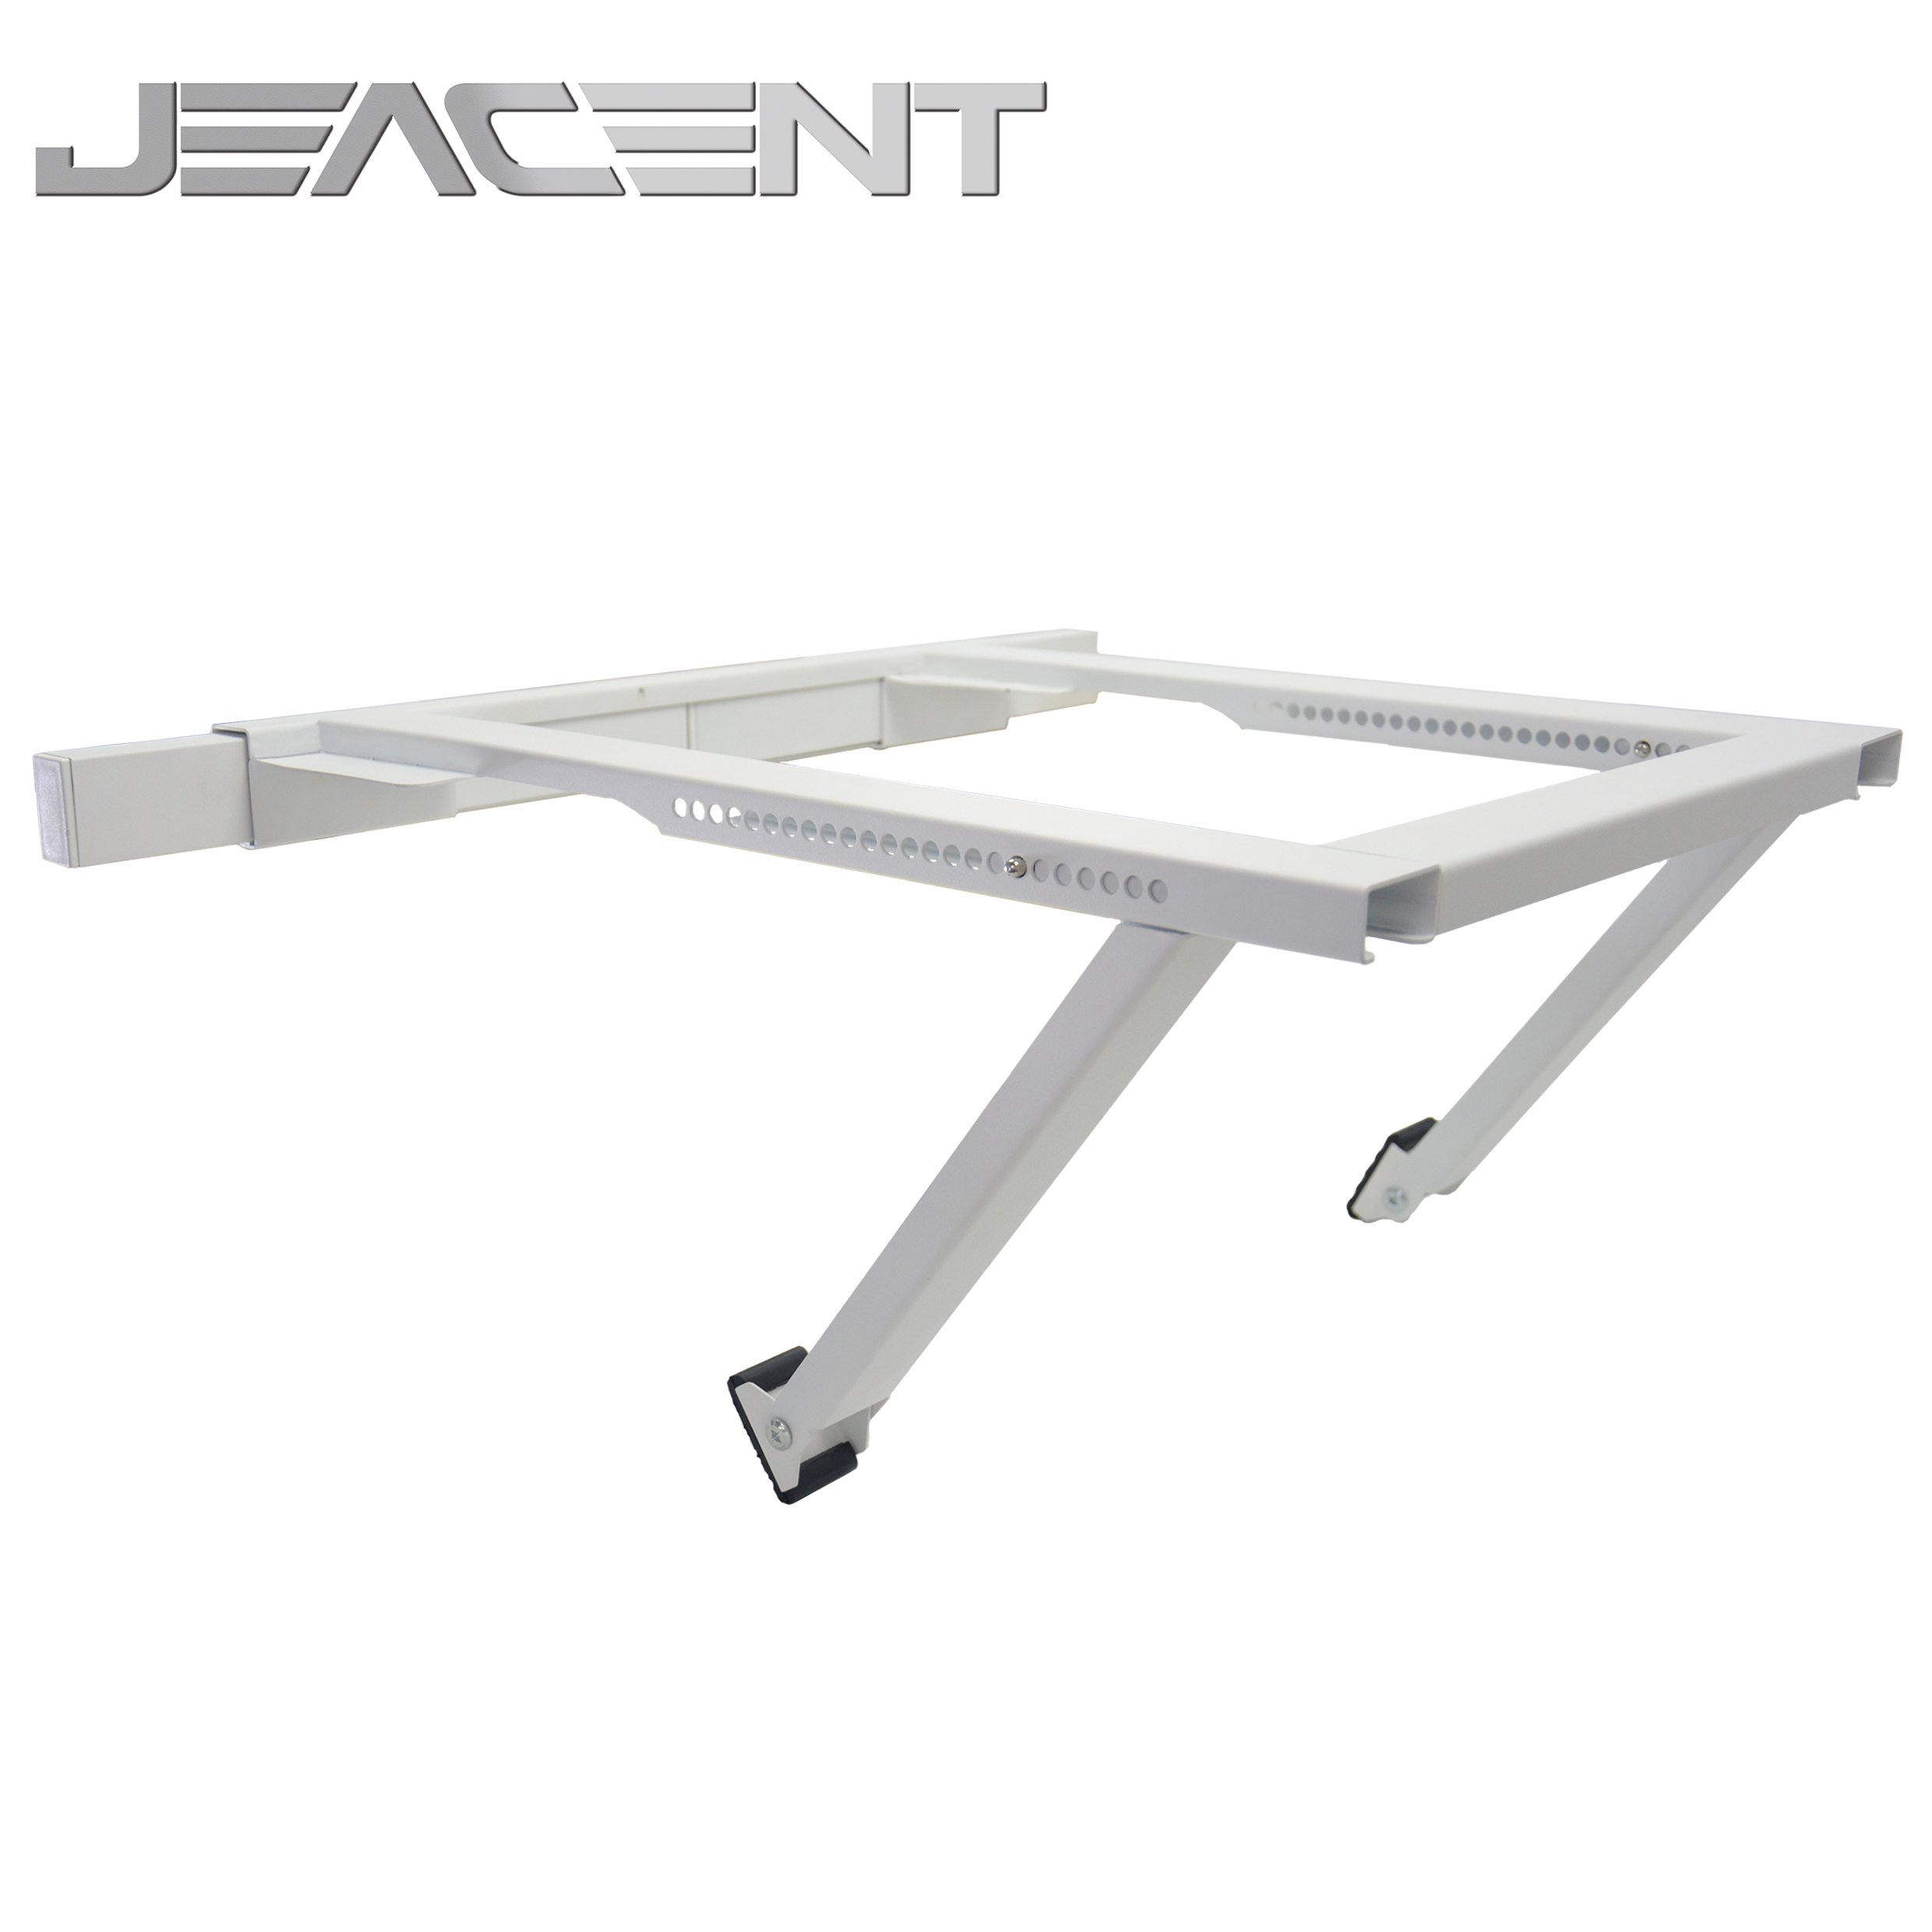 Jeacent AC Window Air Conditioner Support Bracket No Drilling by Jeacent (Image #2)